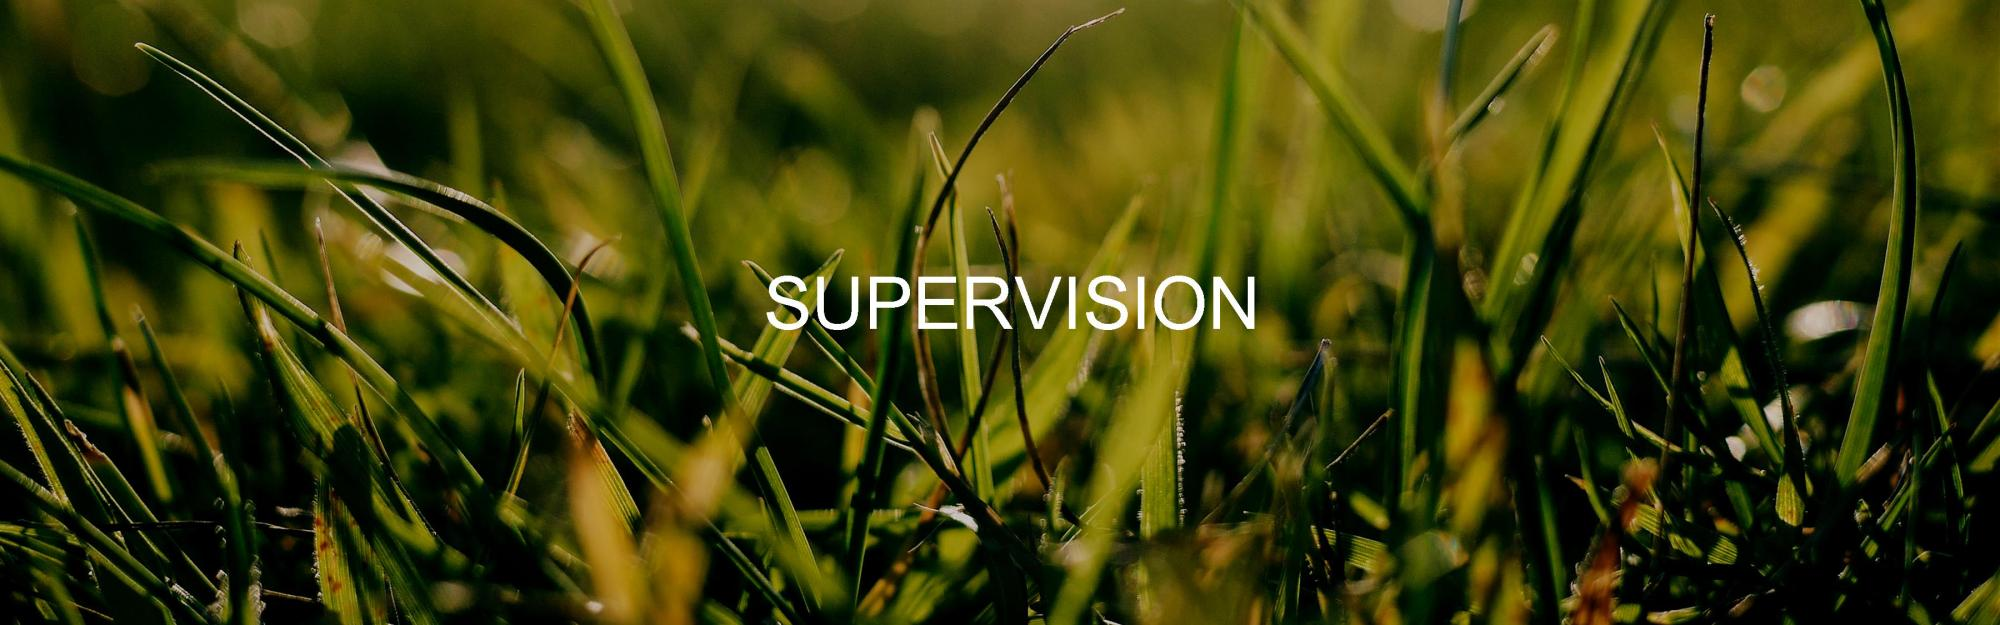 supervision grass